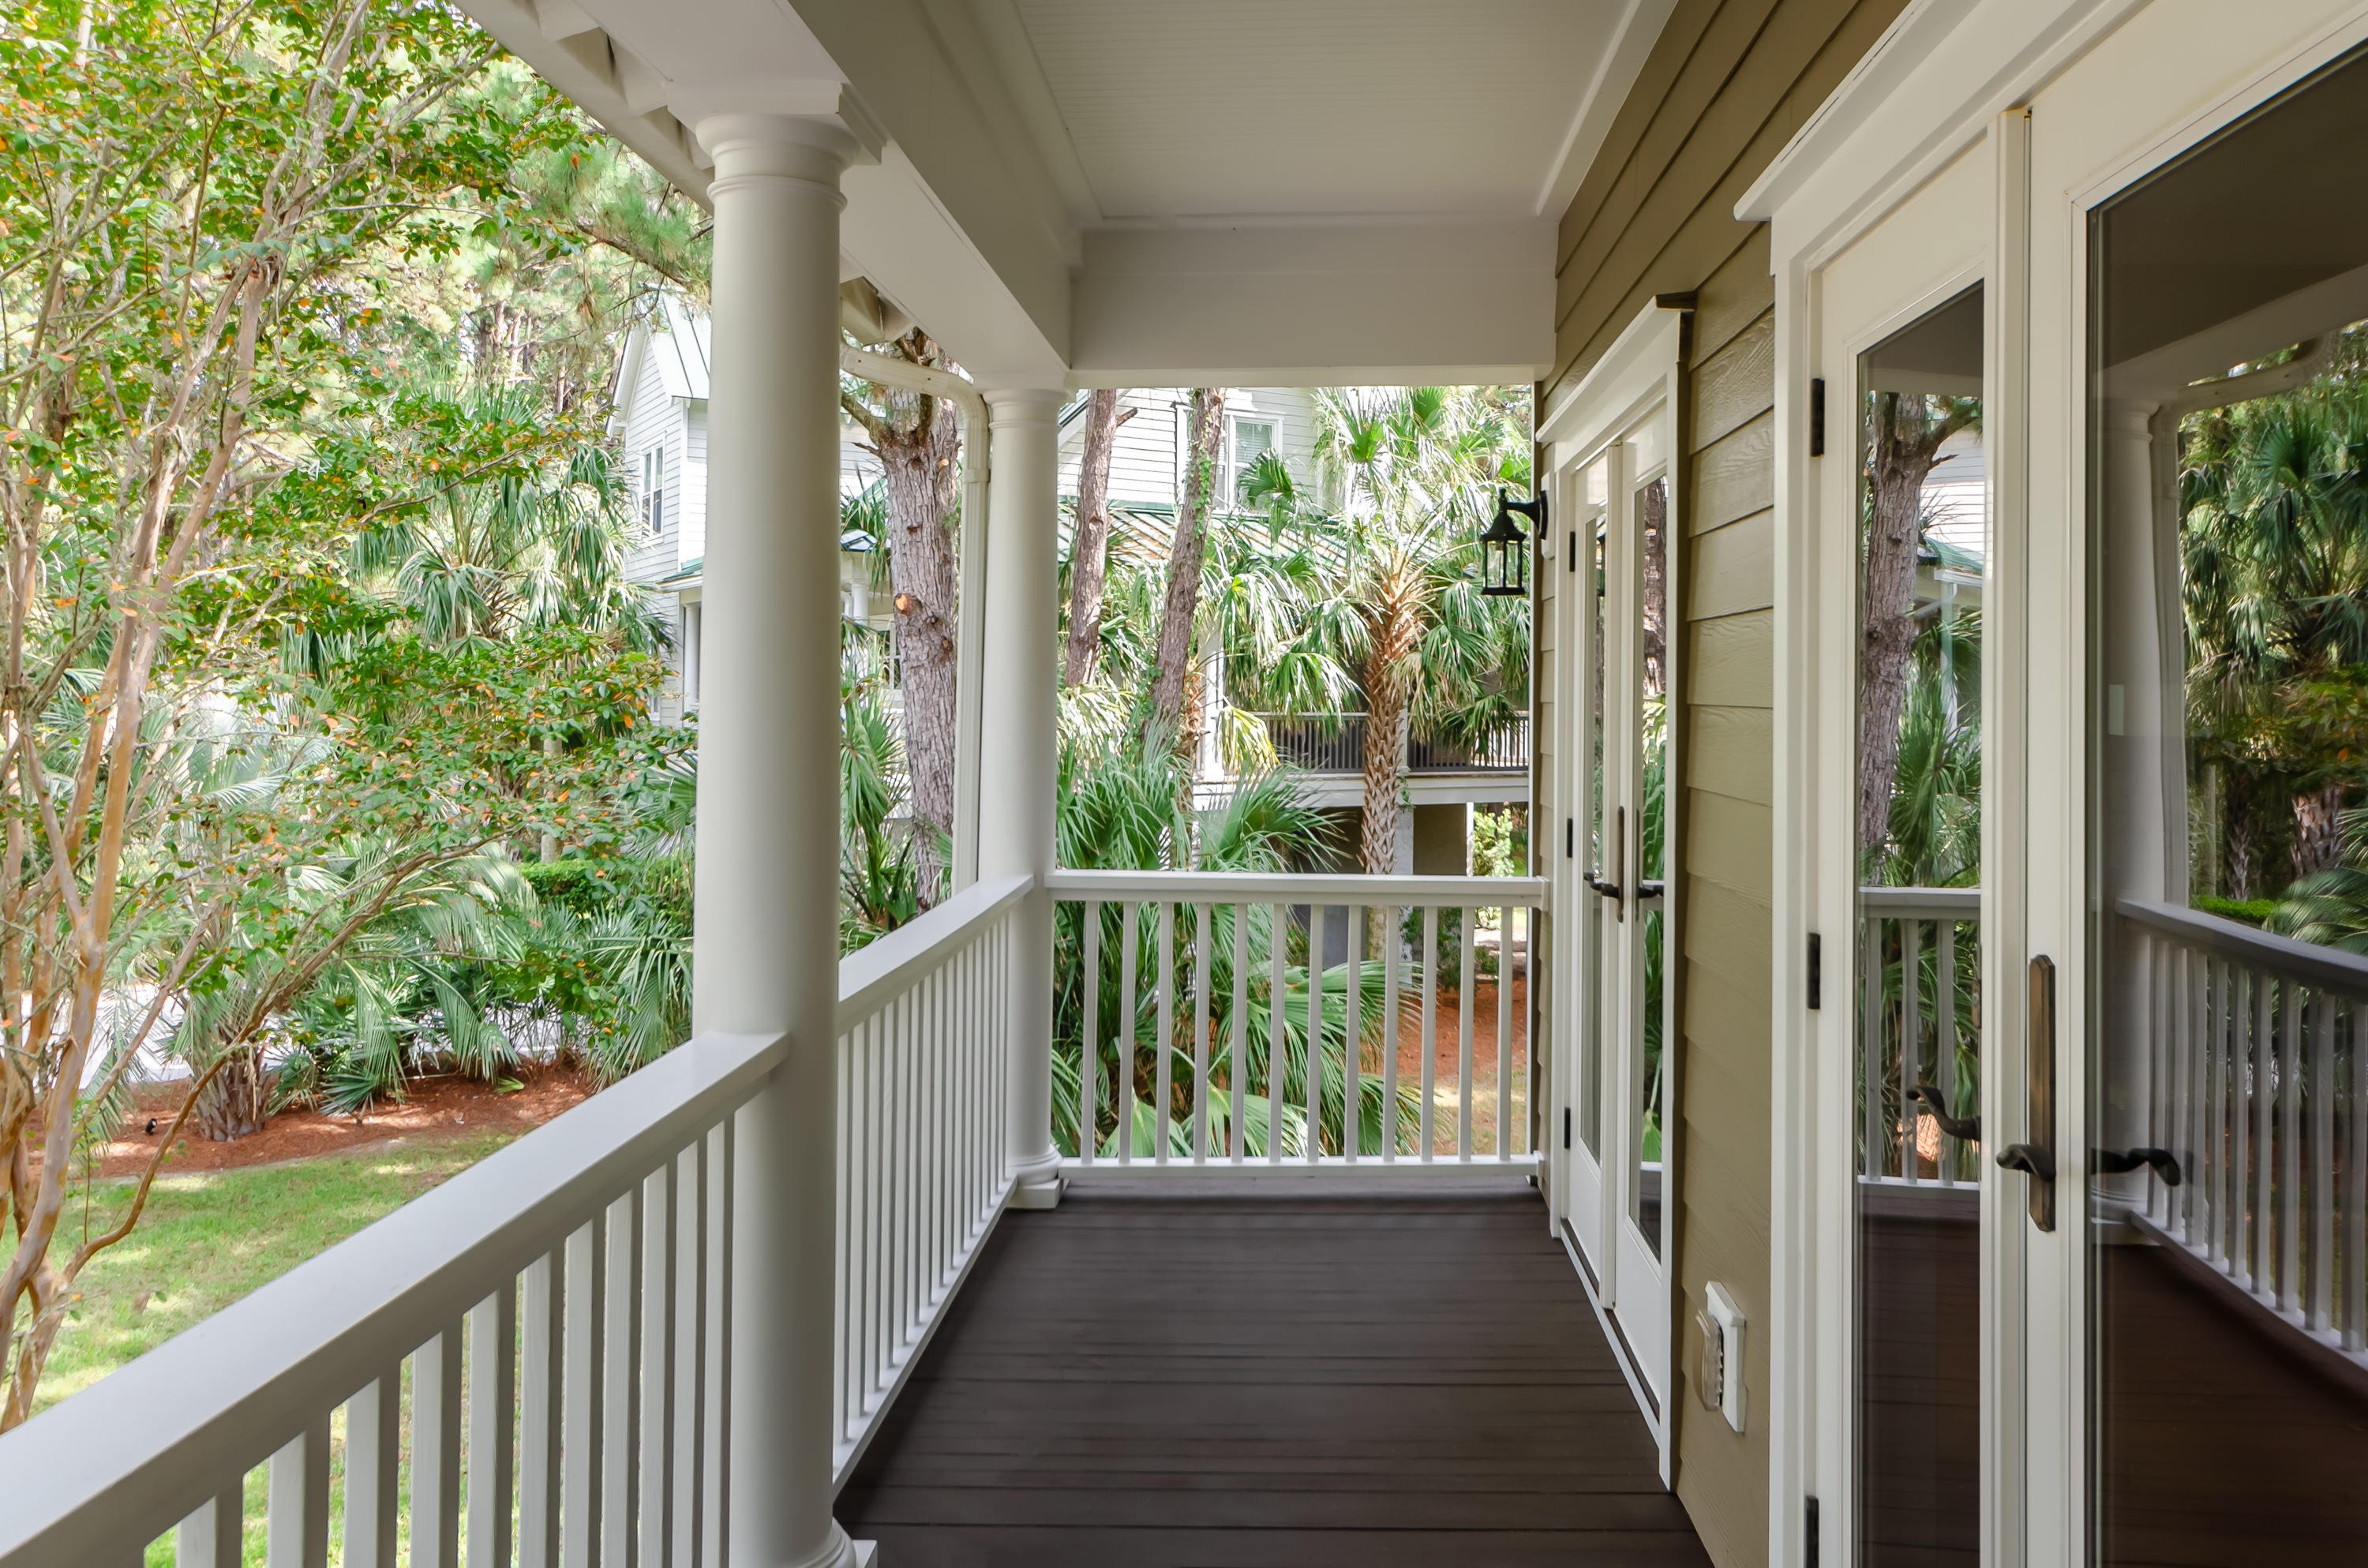 The Village at Seabrook Homes For Sale - 3076 Seabrook Village, Seabrook Island, SC - 25